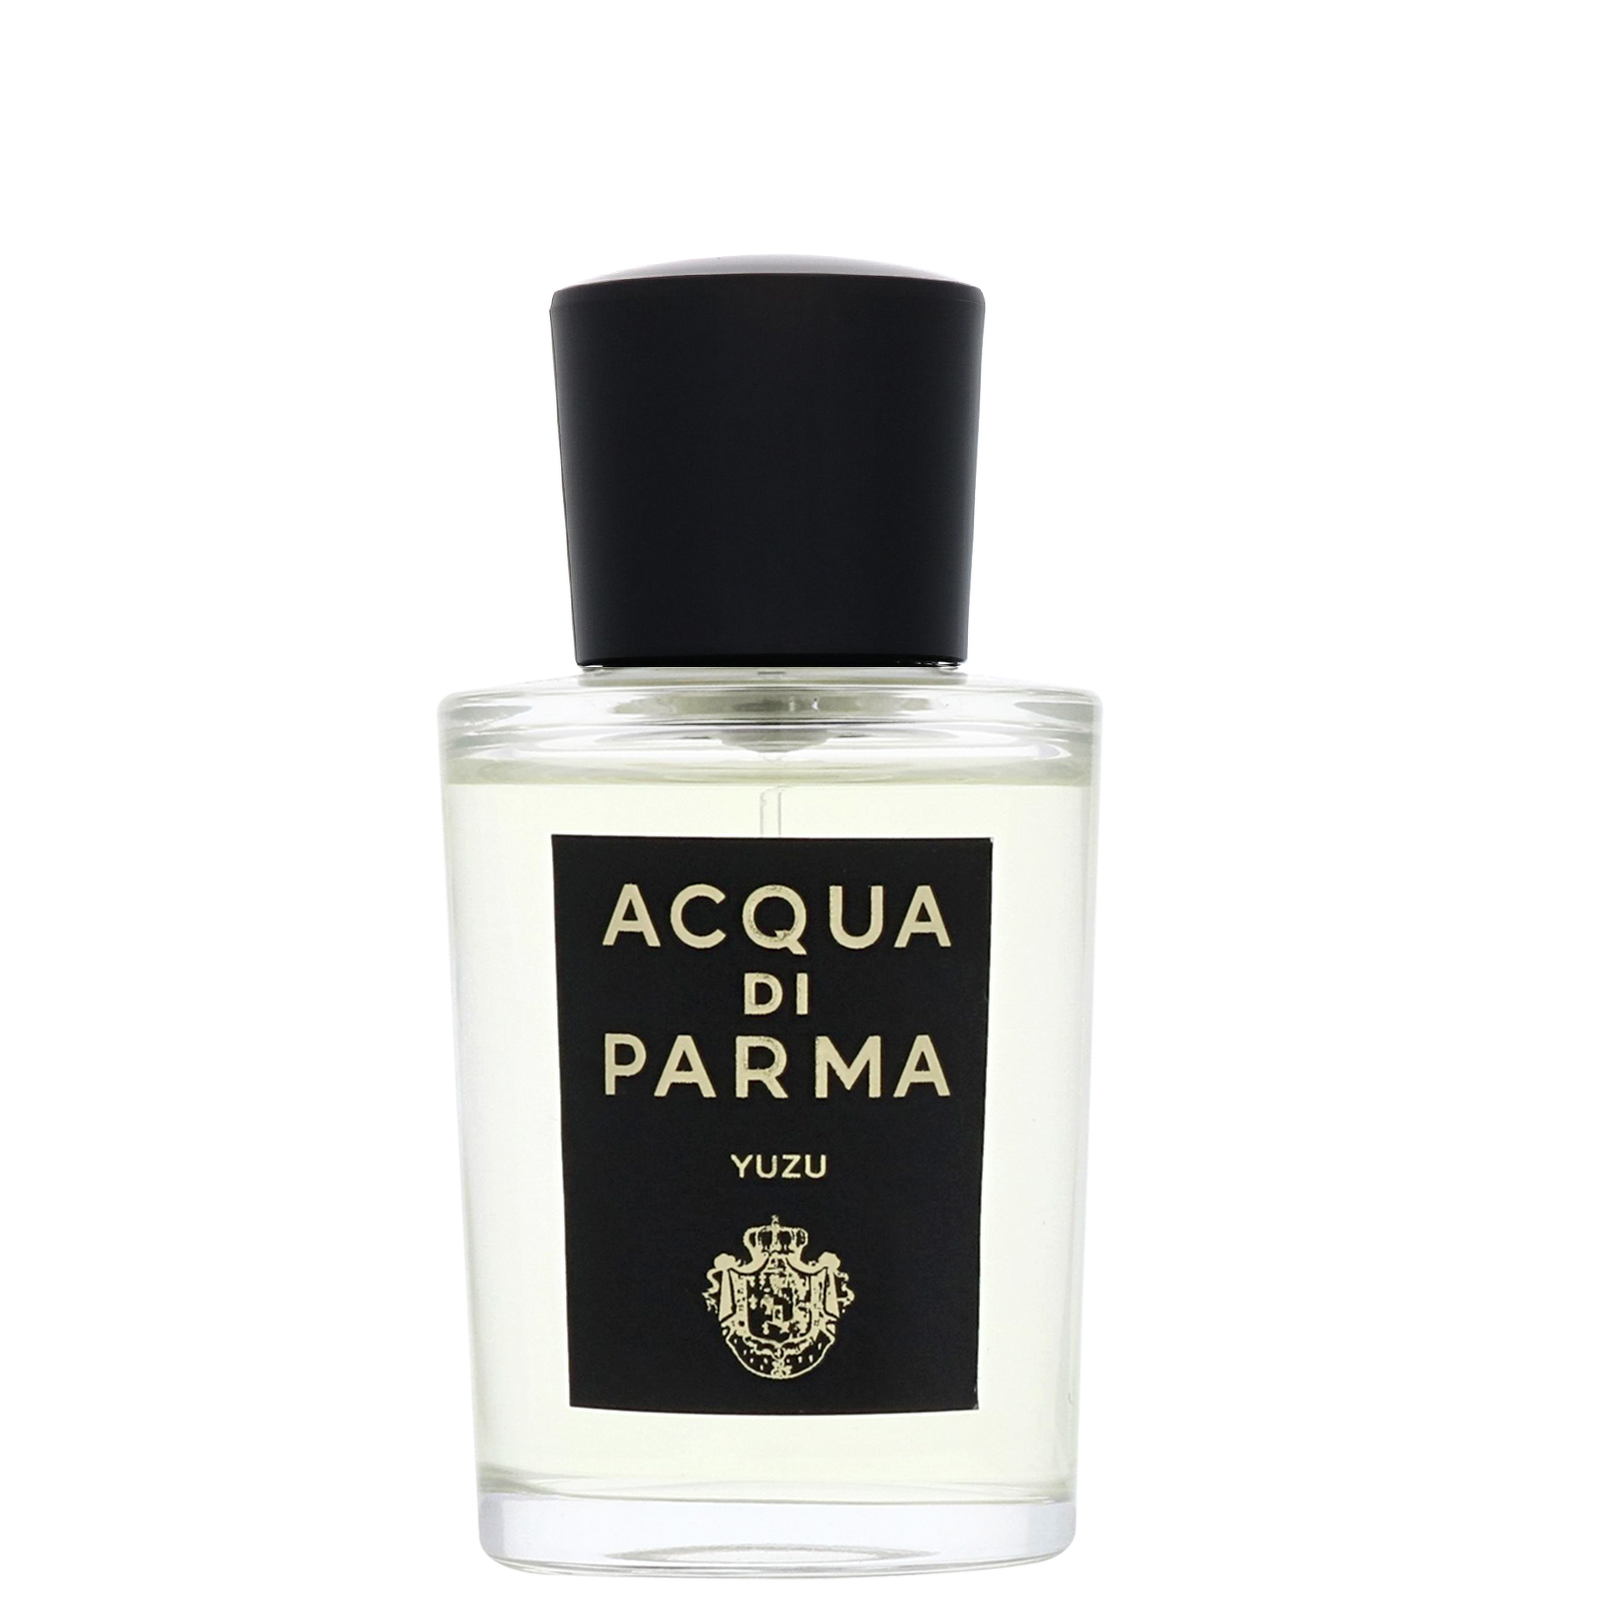 Acqua Di Parma Yuzu Eau de Parfum Spray 20ml